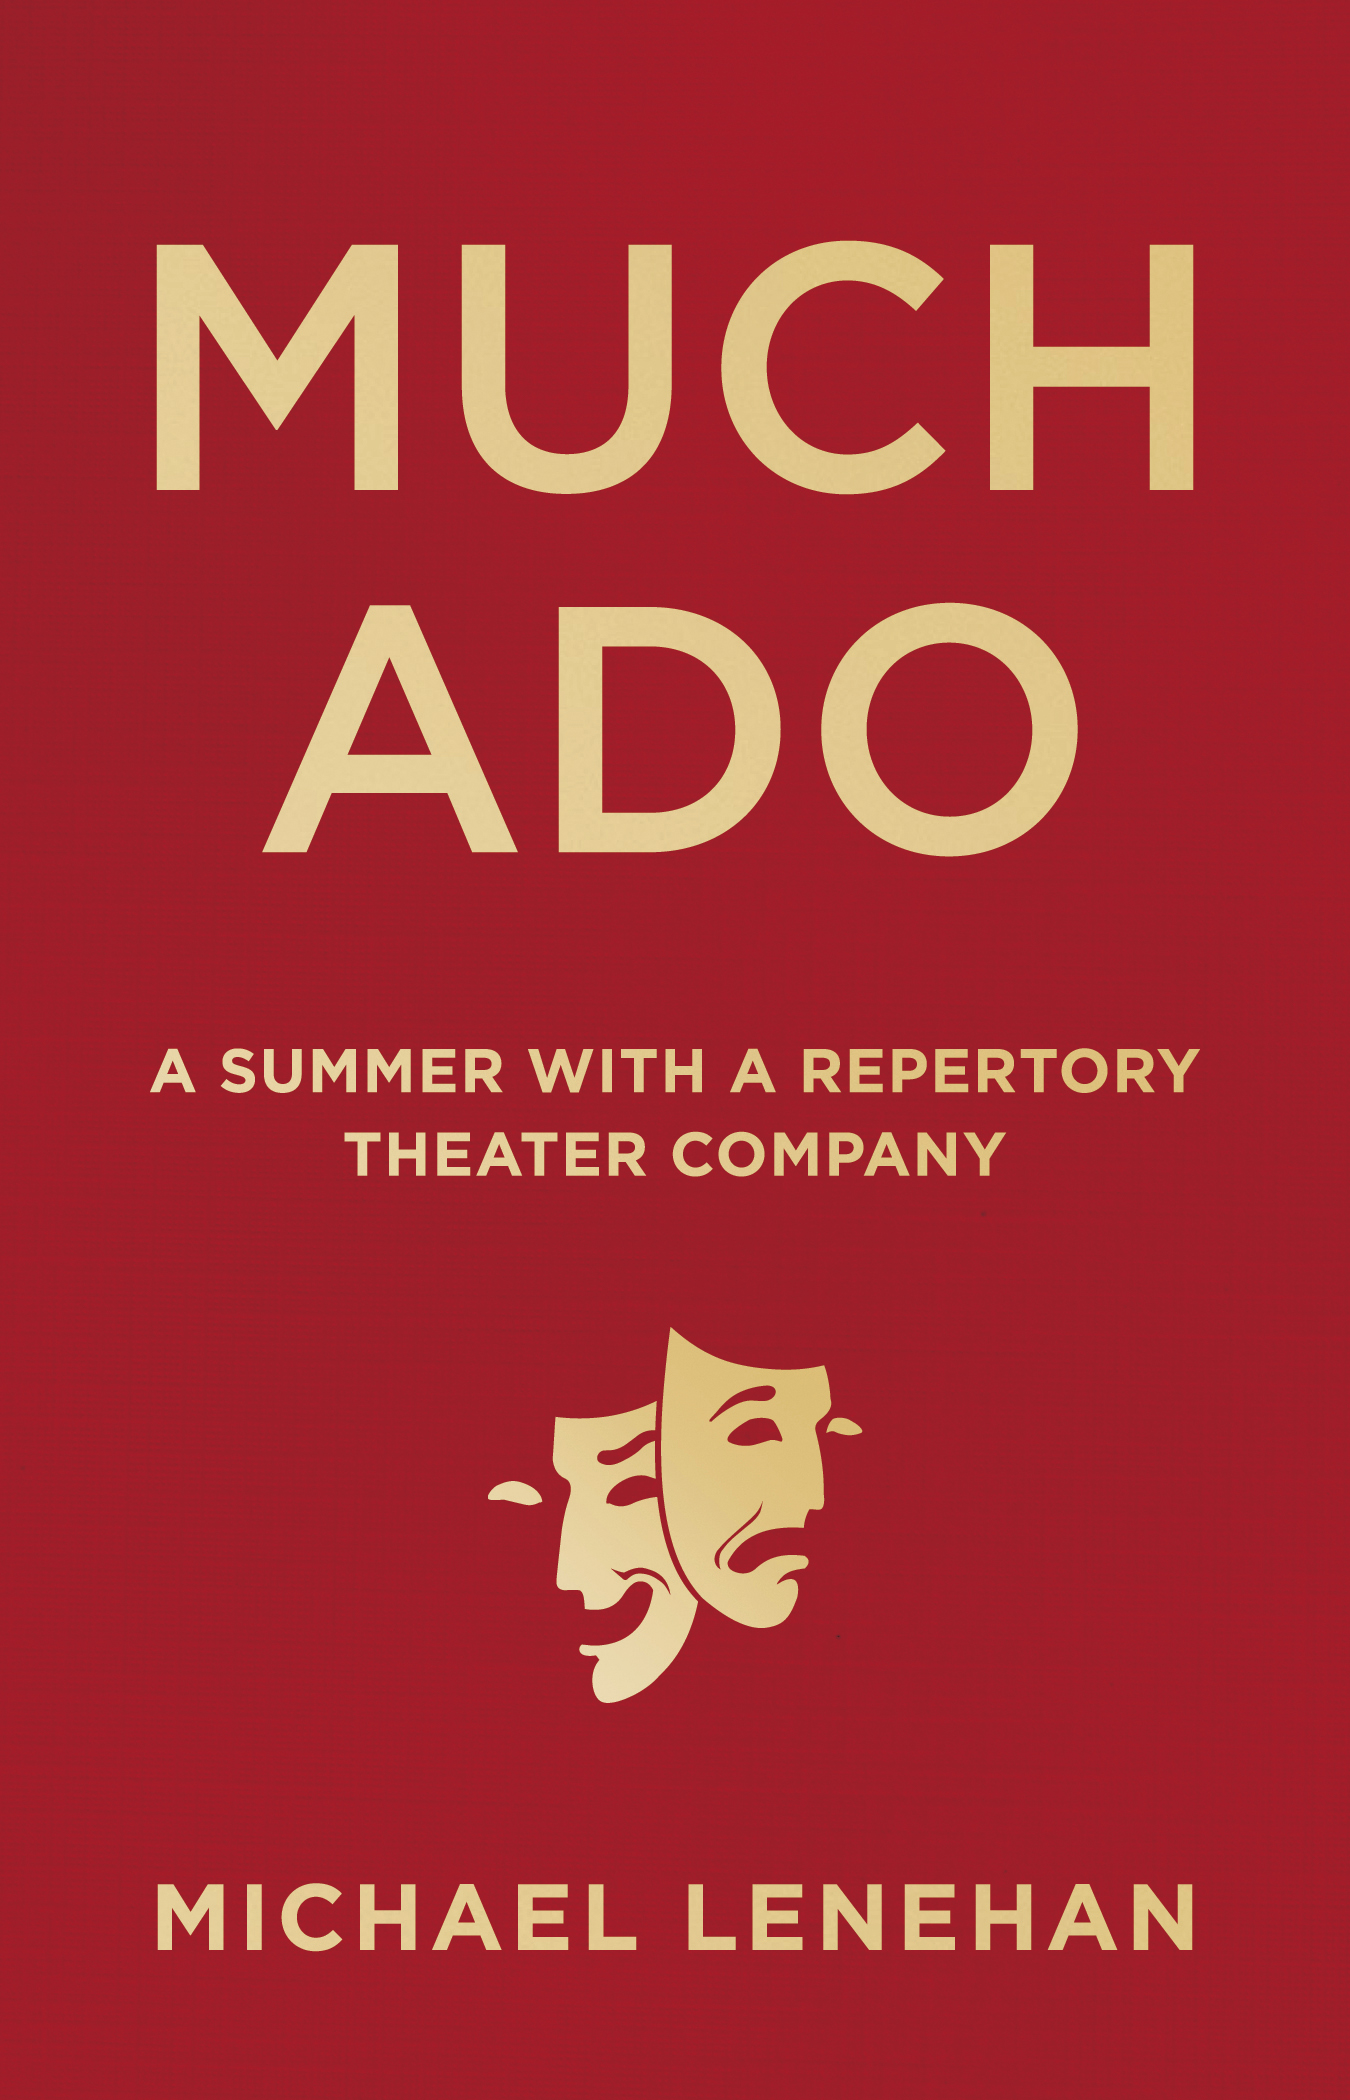 """Much Ado: A Summer with a Repertory Theater Company  - Michael Lenehan - <span class=""""date-display-single"""">10/23/2016 - 10:30am</span>"""